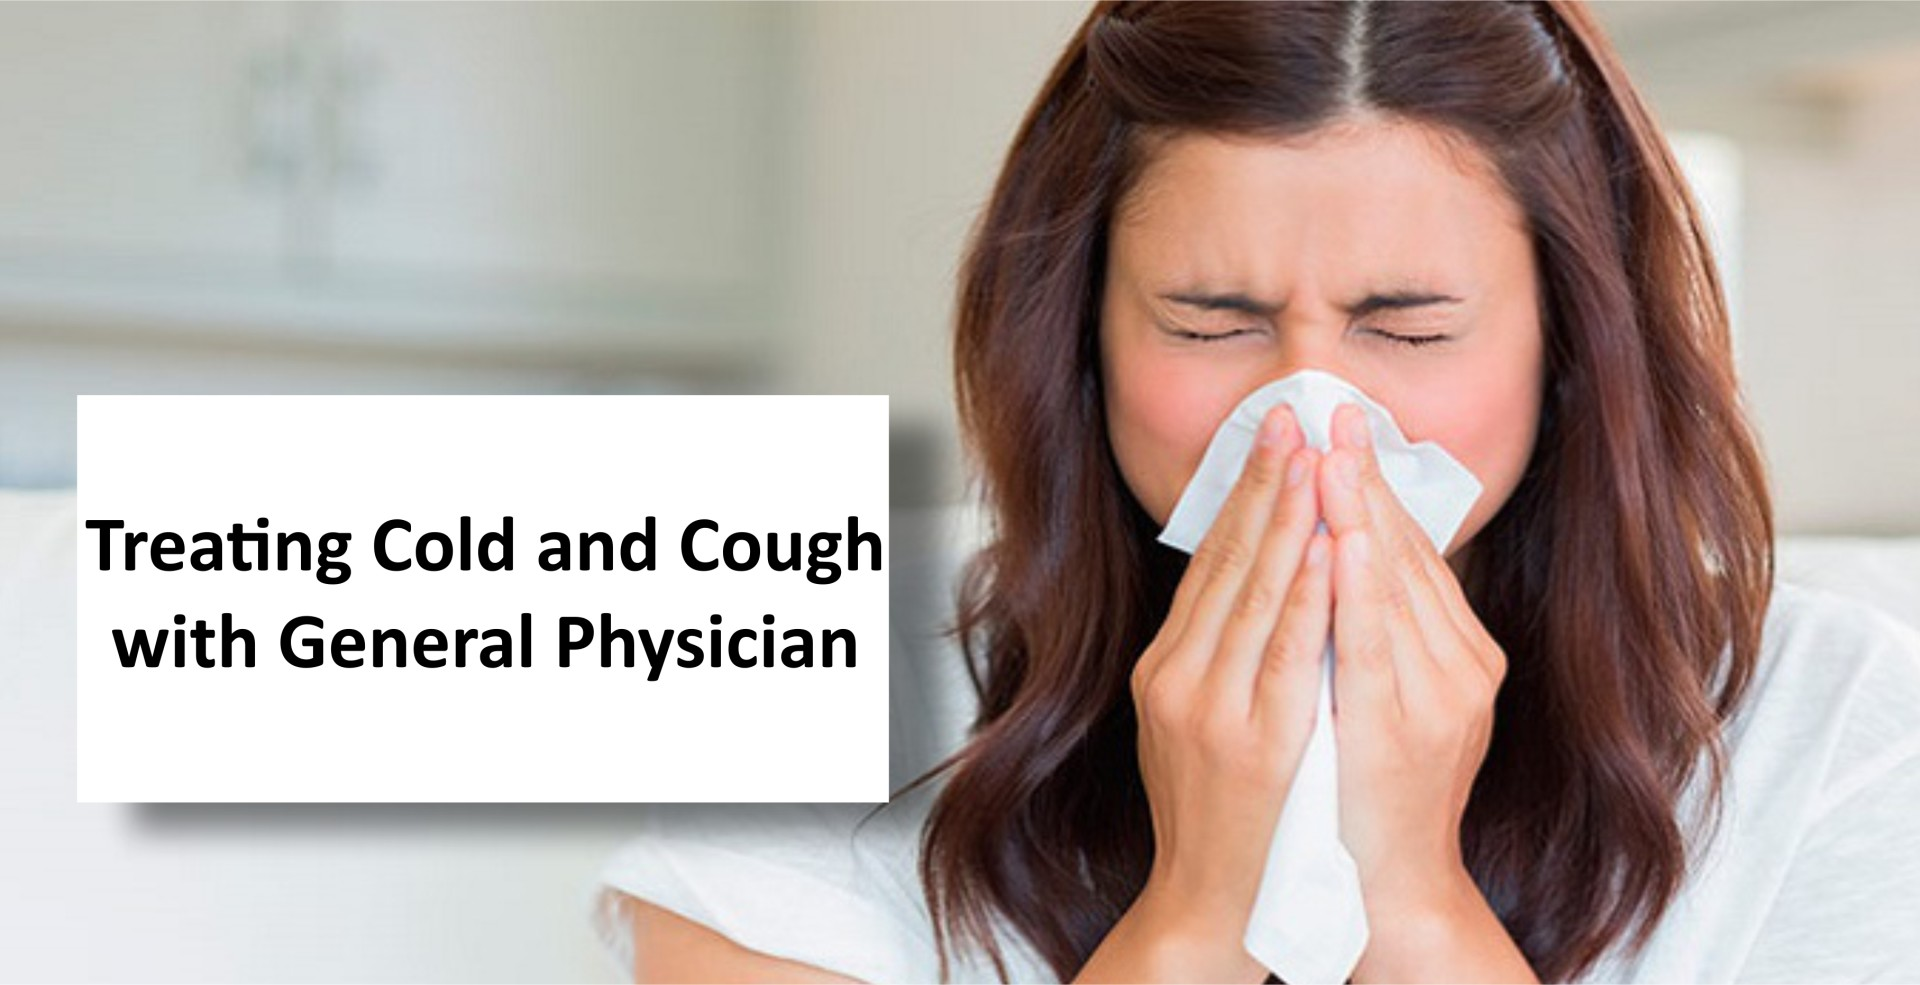 Treating Cold and Cough with General Physician